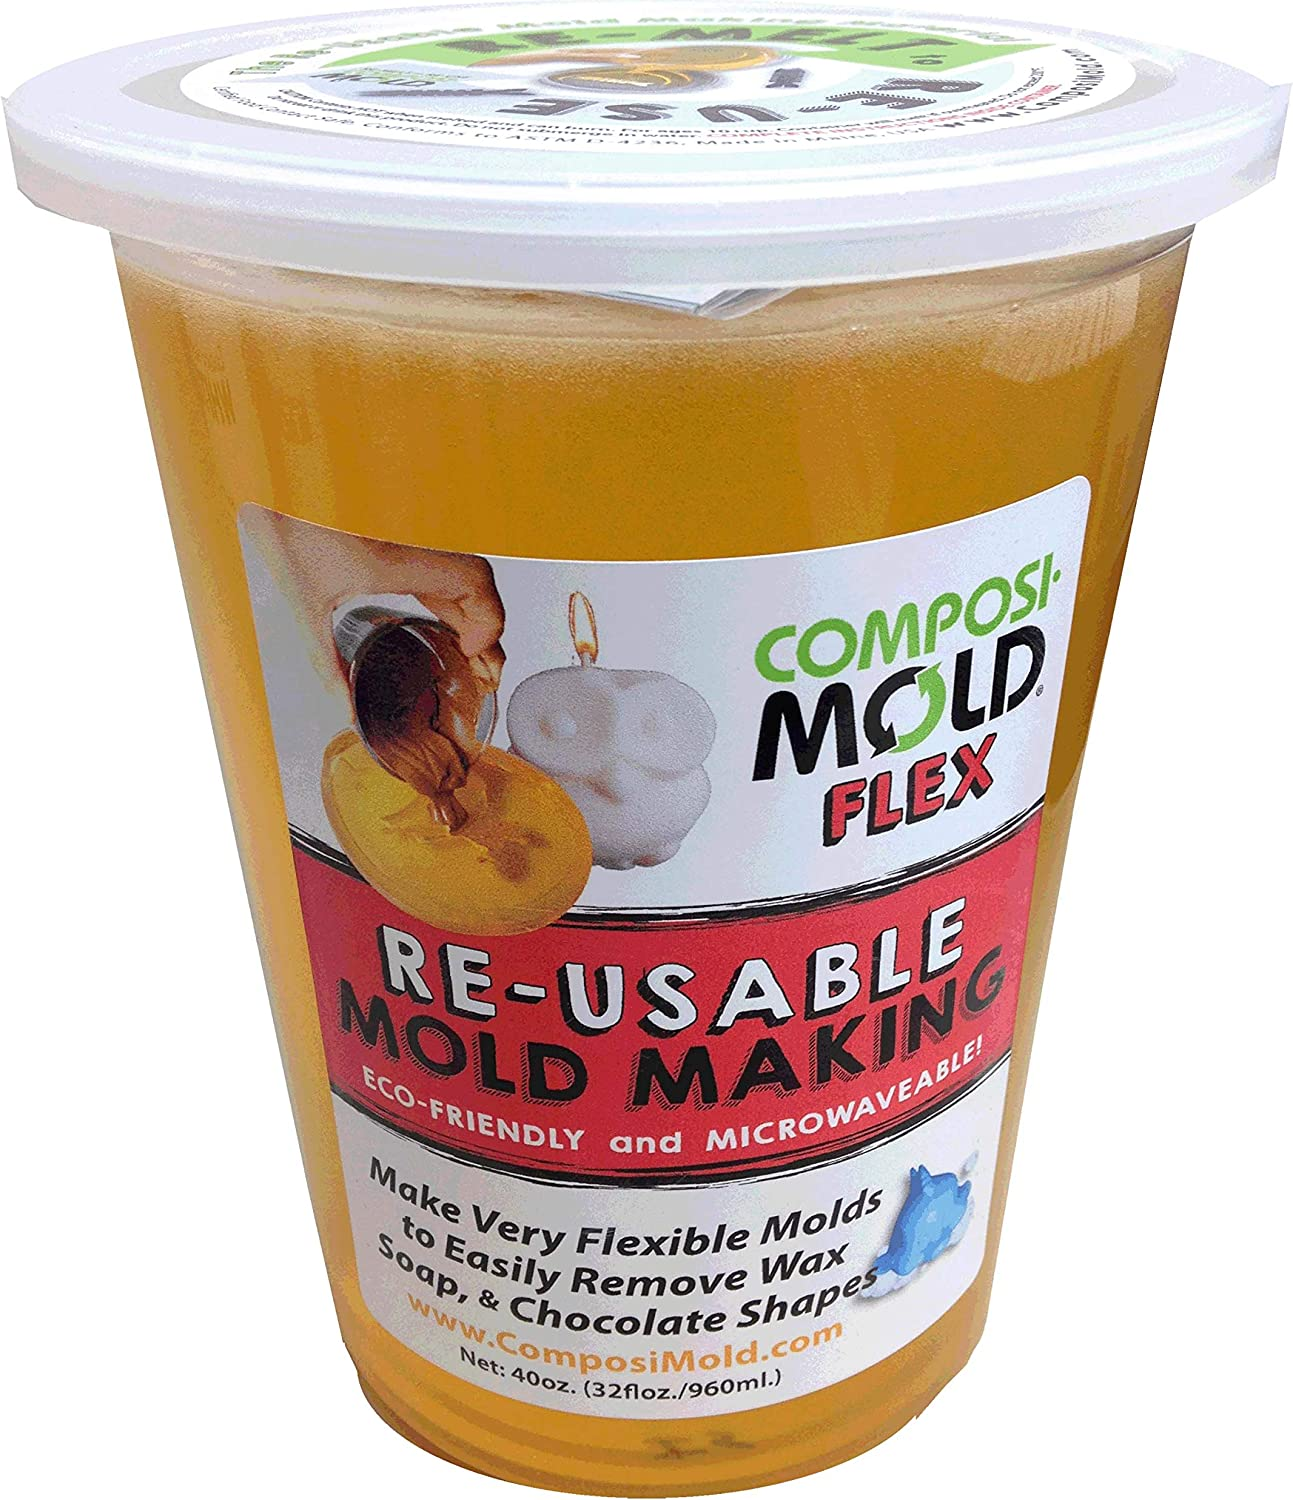 ComposiMold Flex Food Contact Safe Molding Gel 40 Ounce Re-usable Molding Material, Reheat To ReUse